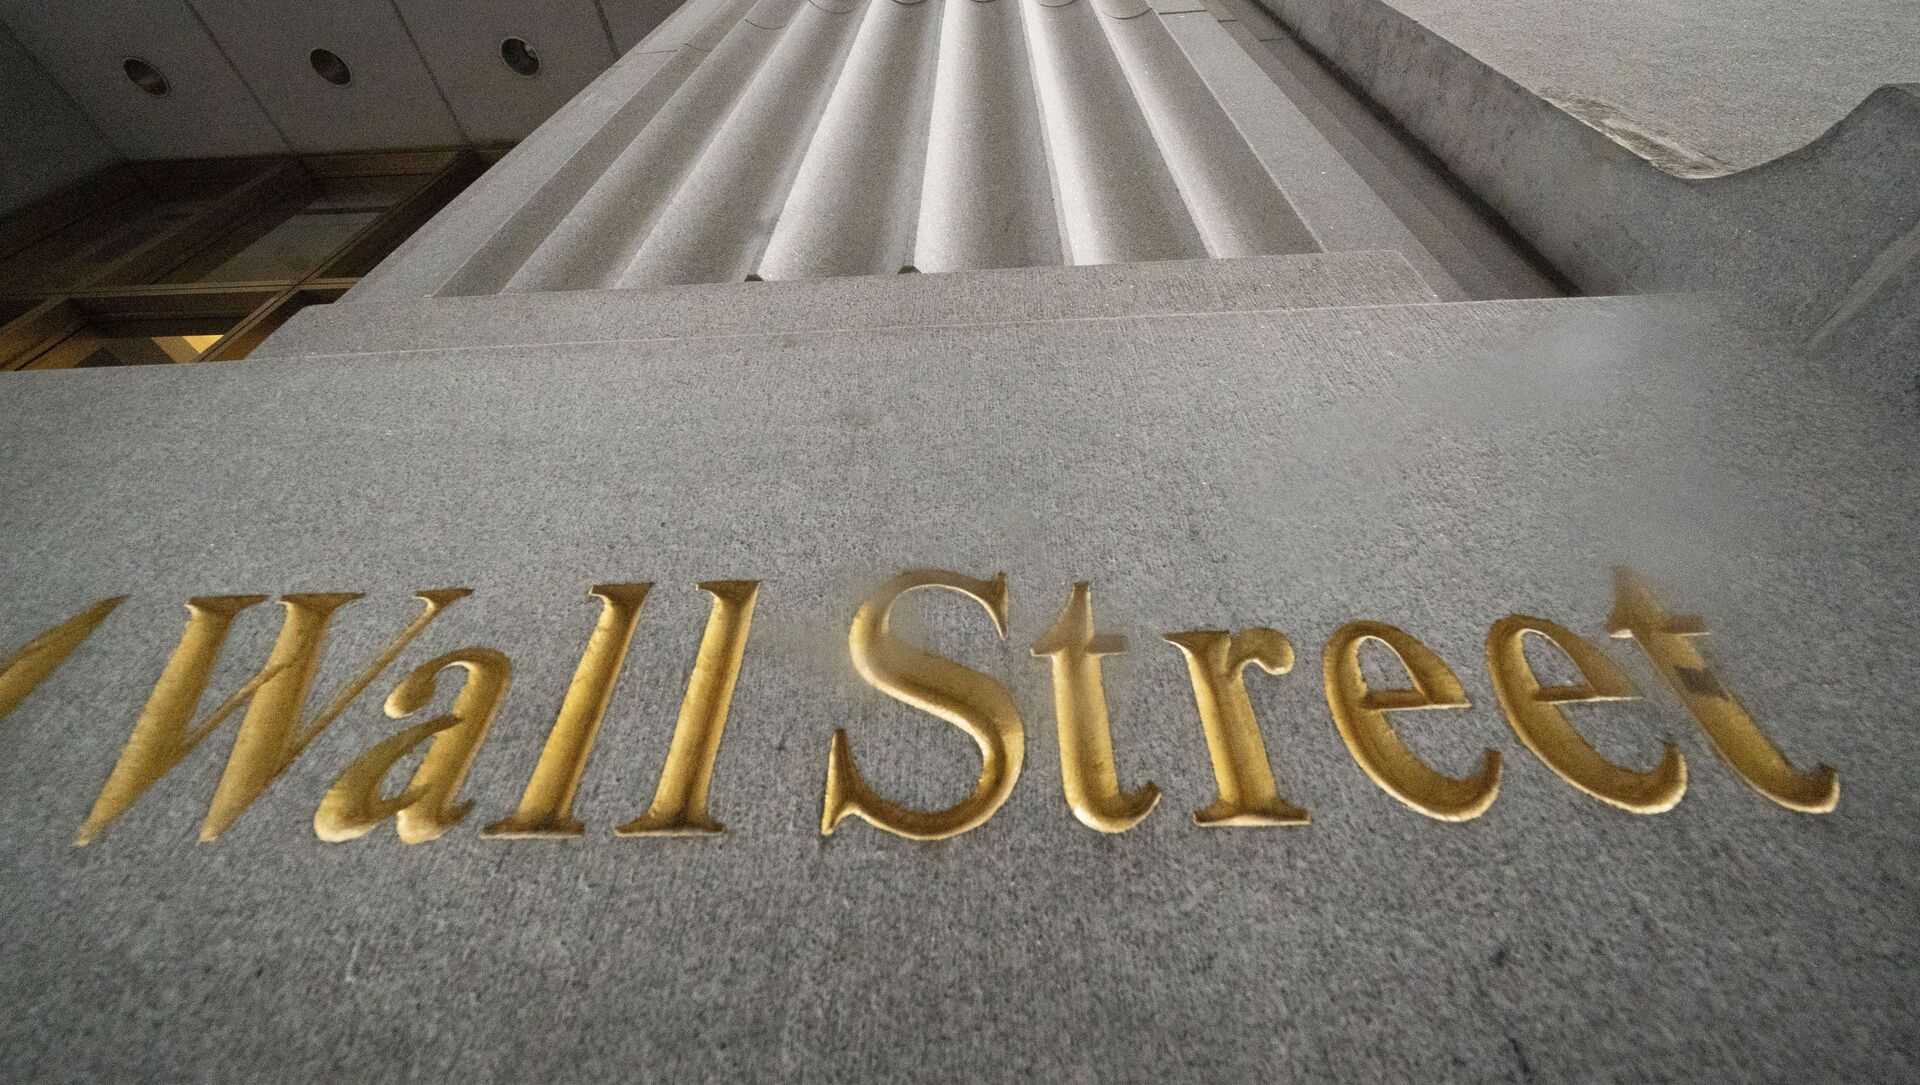 n this Nov. 5, 2020 file photo, a sign for Wall Street is carved in the side of a building. Stocks are easing lower in early trading on Wall Street, pulling major indexes slightly below the record highs they reached last week. - Sputnik International, 1920, 03.09.2021